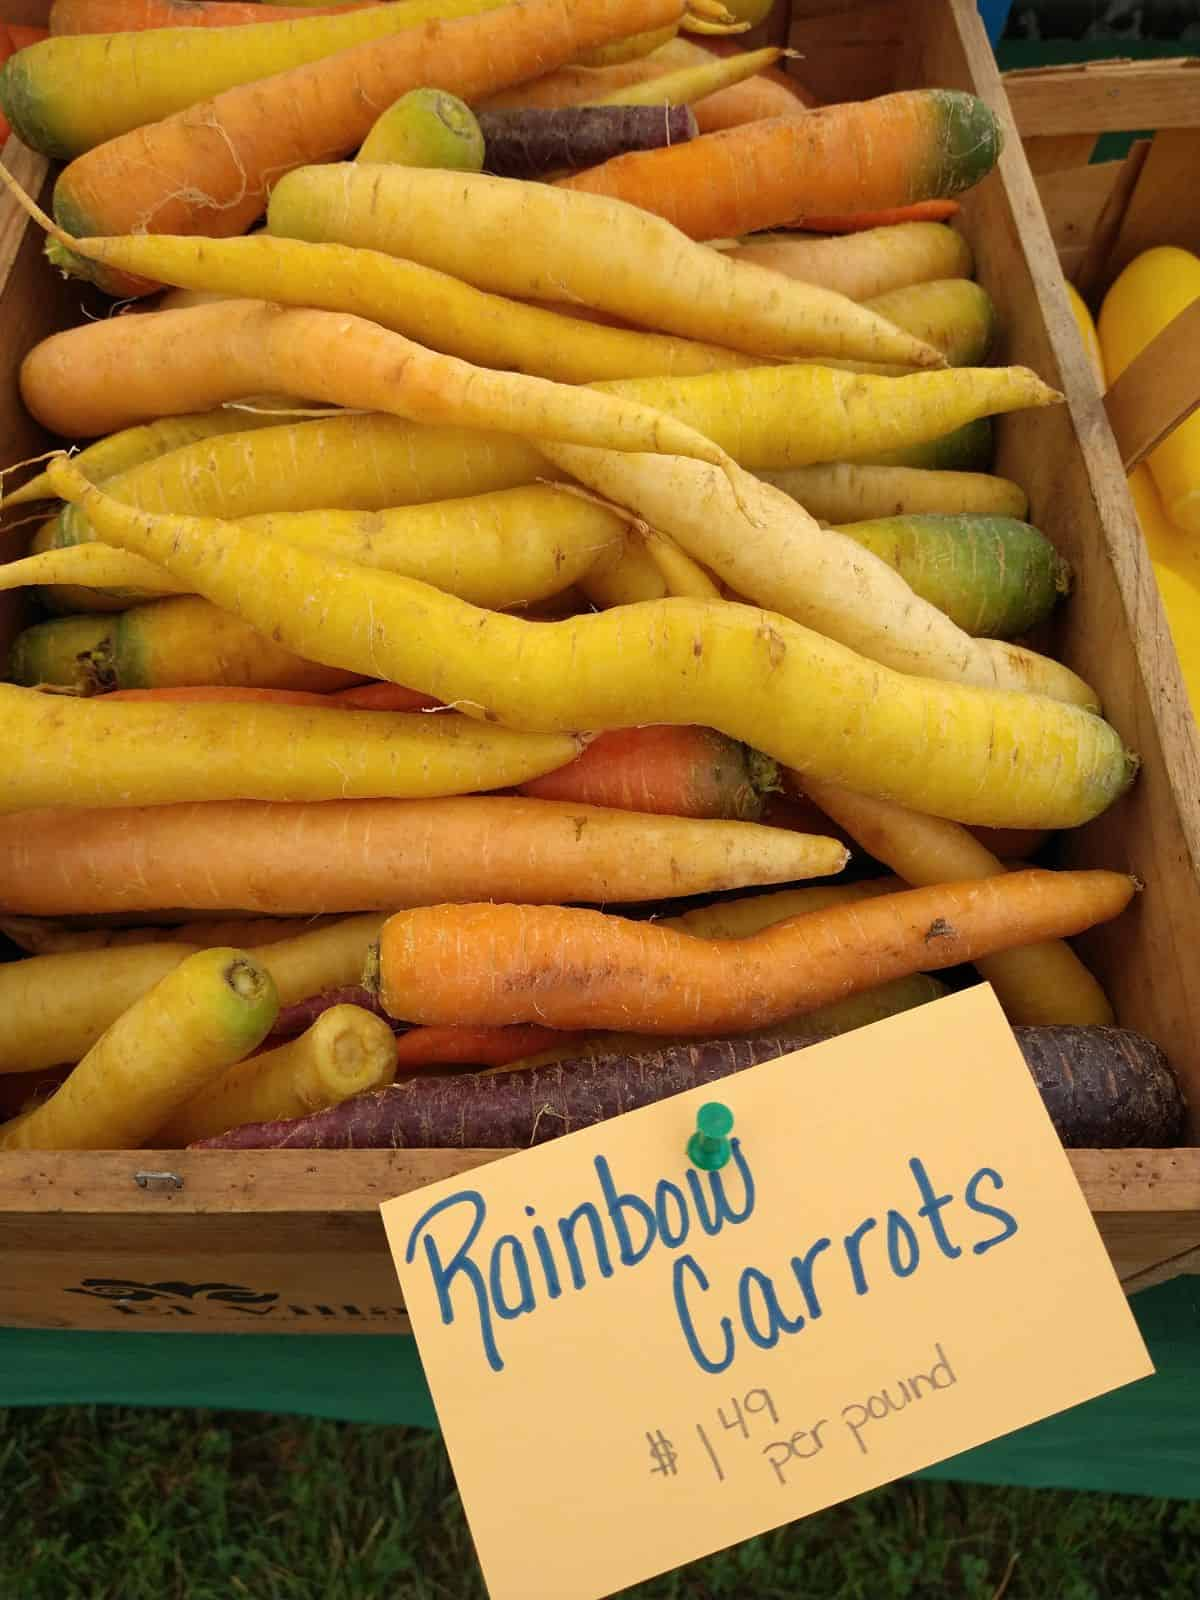 """A wood box of carrots of different shades of yellow and orange as well purple at a farmer's market. A sign attached to the box says """"Rainbow carrots $1.49 per pound"""""""